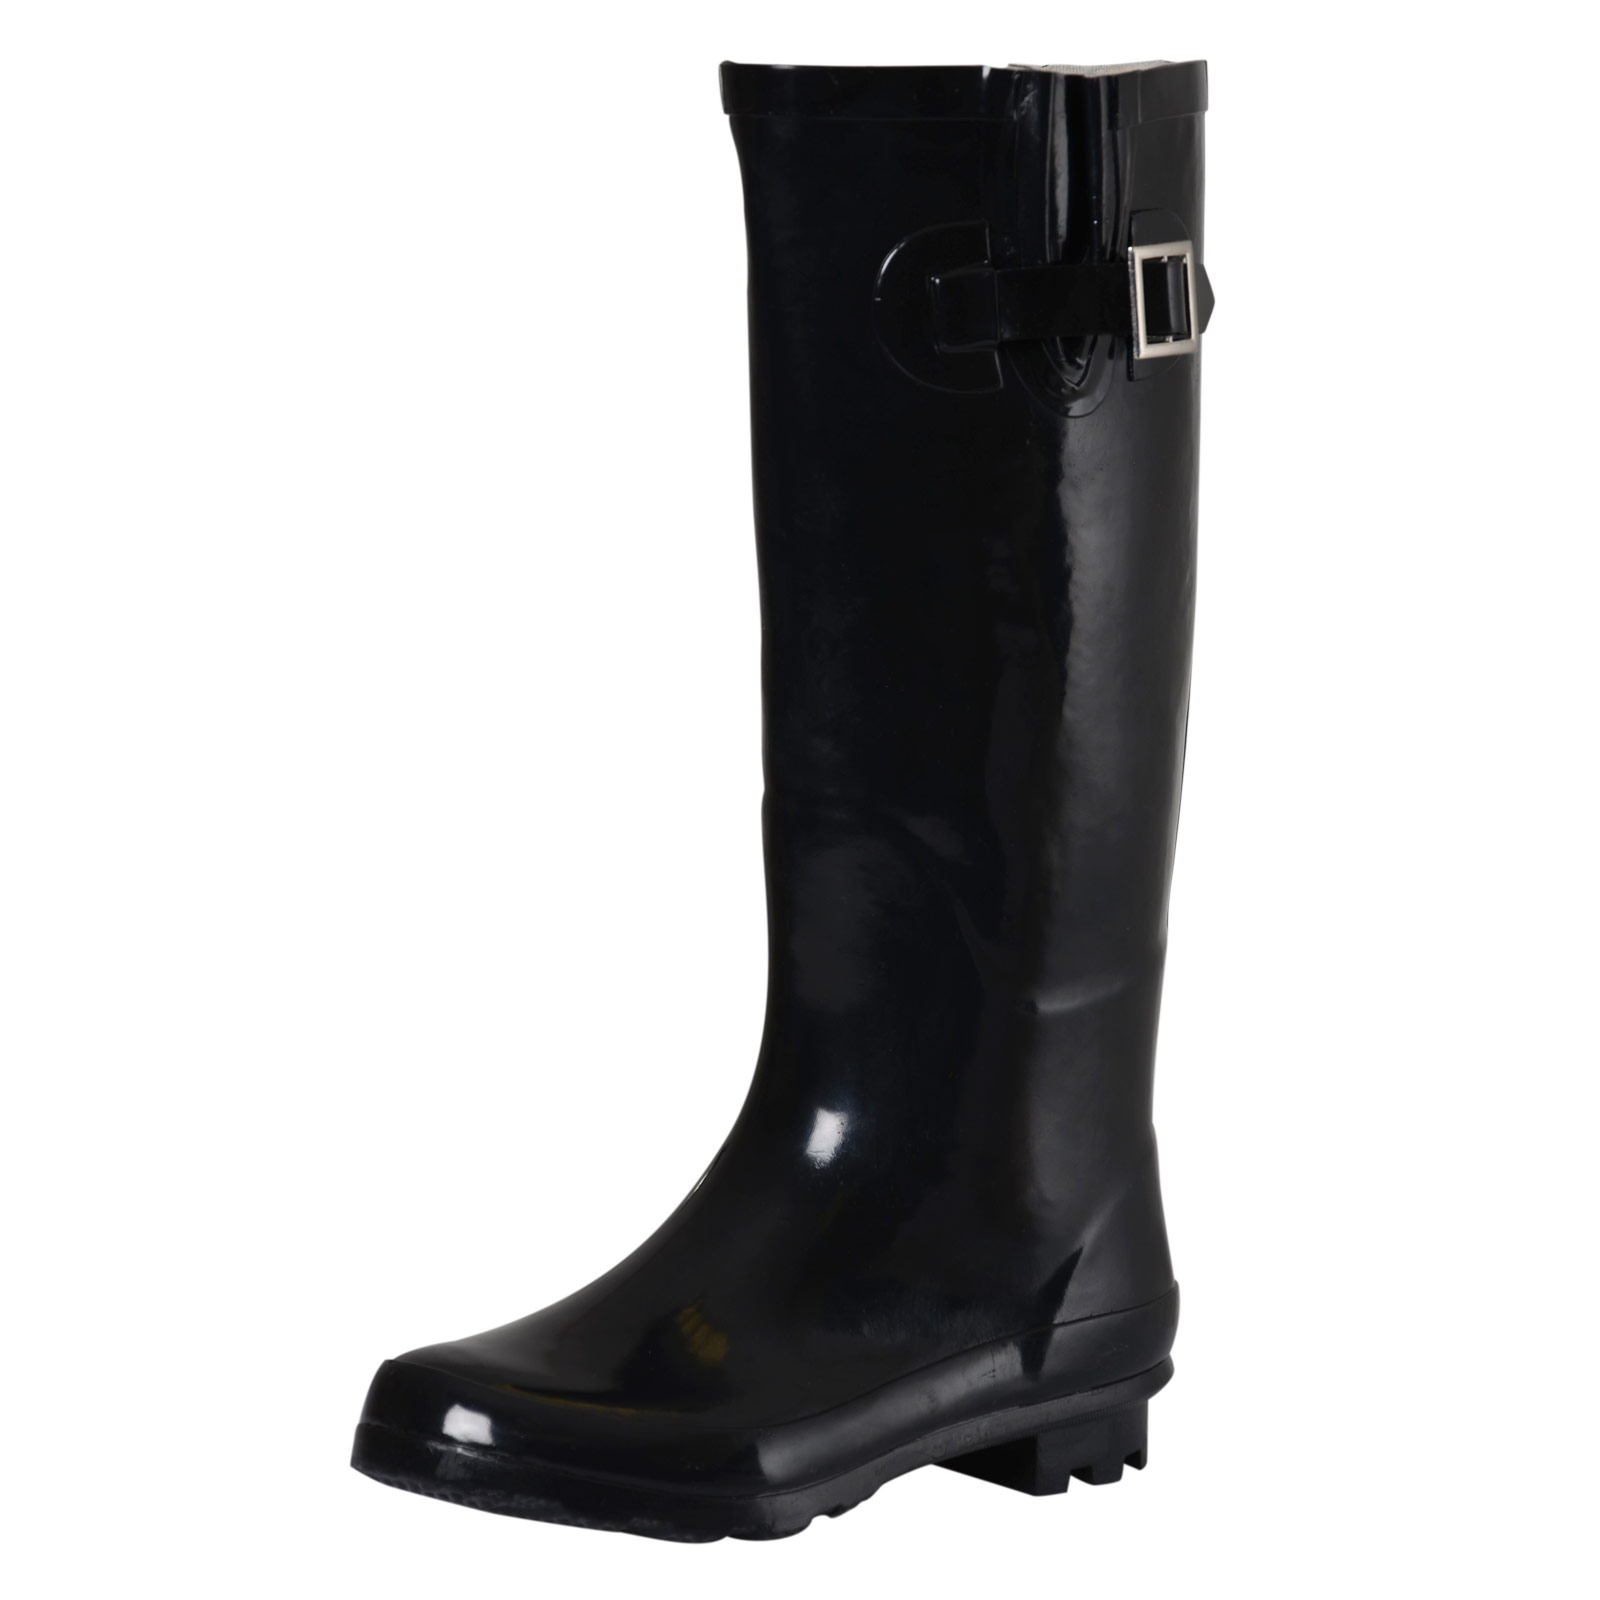 Free shipping BOTH ways on Rain Boots, Wellington, from our vast selection of styles. Fast delivery, and 24/7/ real-person service with a smile. Click or call